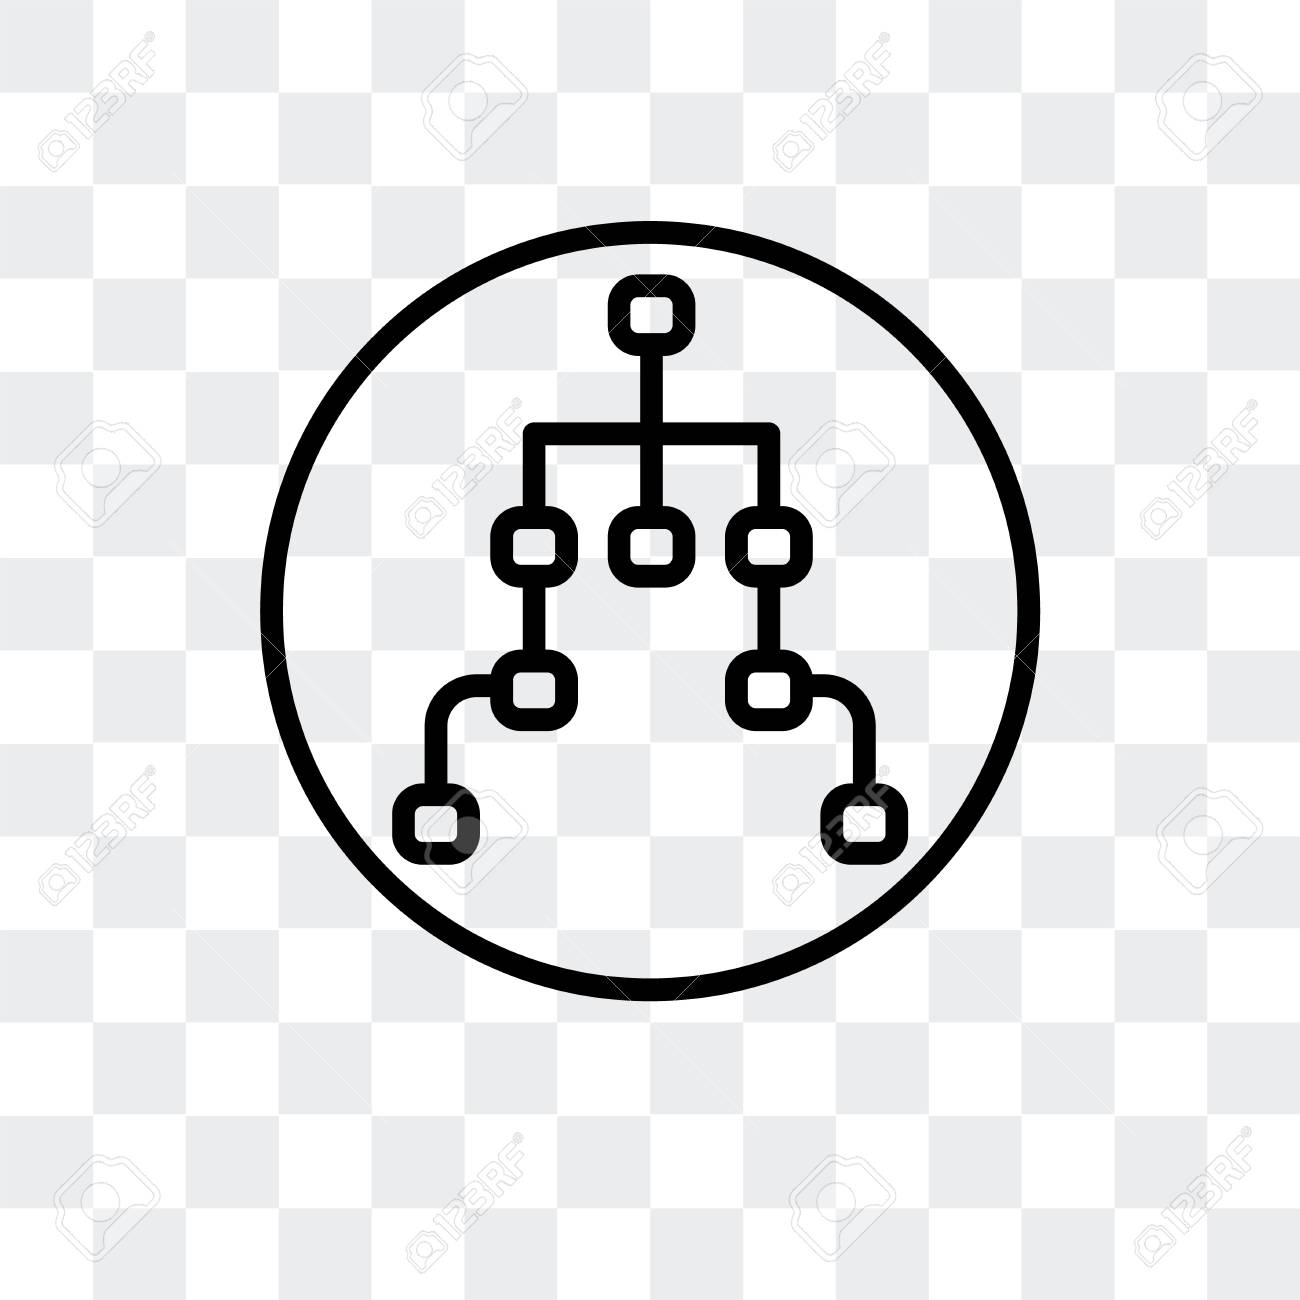 structure vector icon isolated on transparent background structure royalty free cliparts vectors and stock illustration image 107265848 structure vector icon isolated on transparent background structure